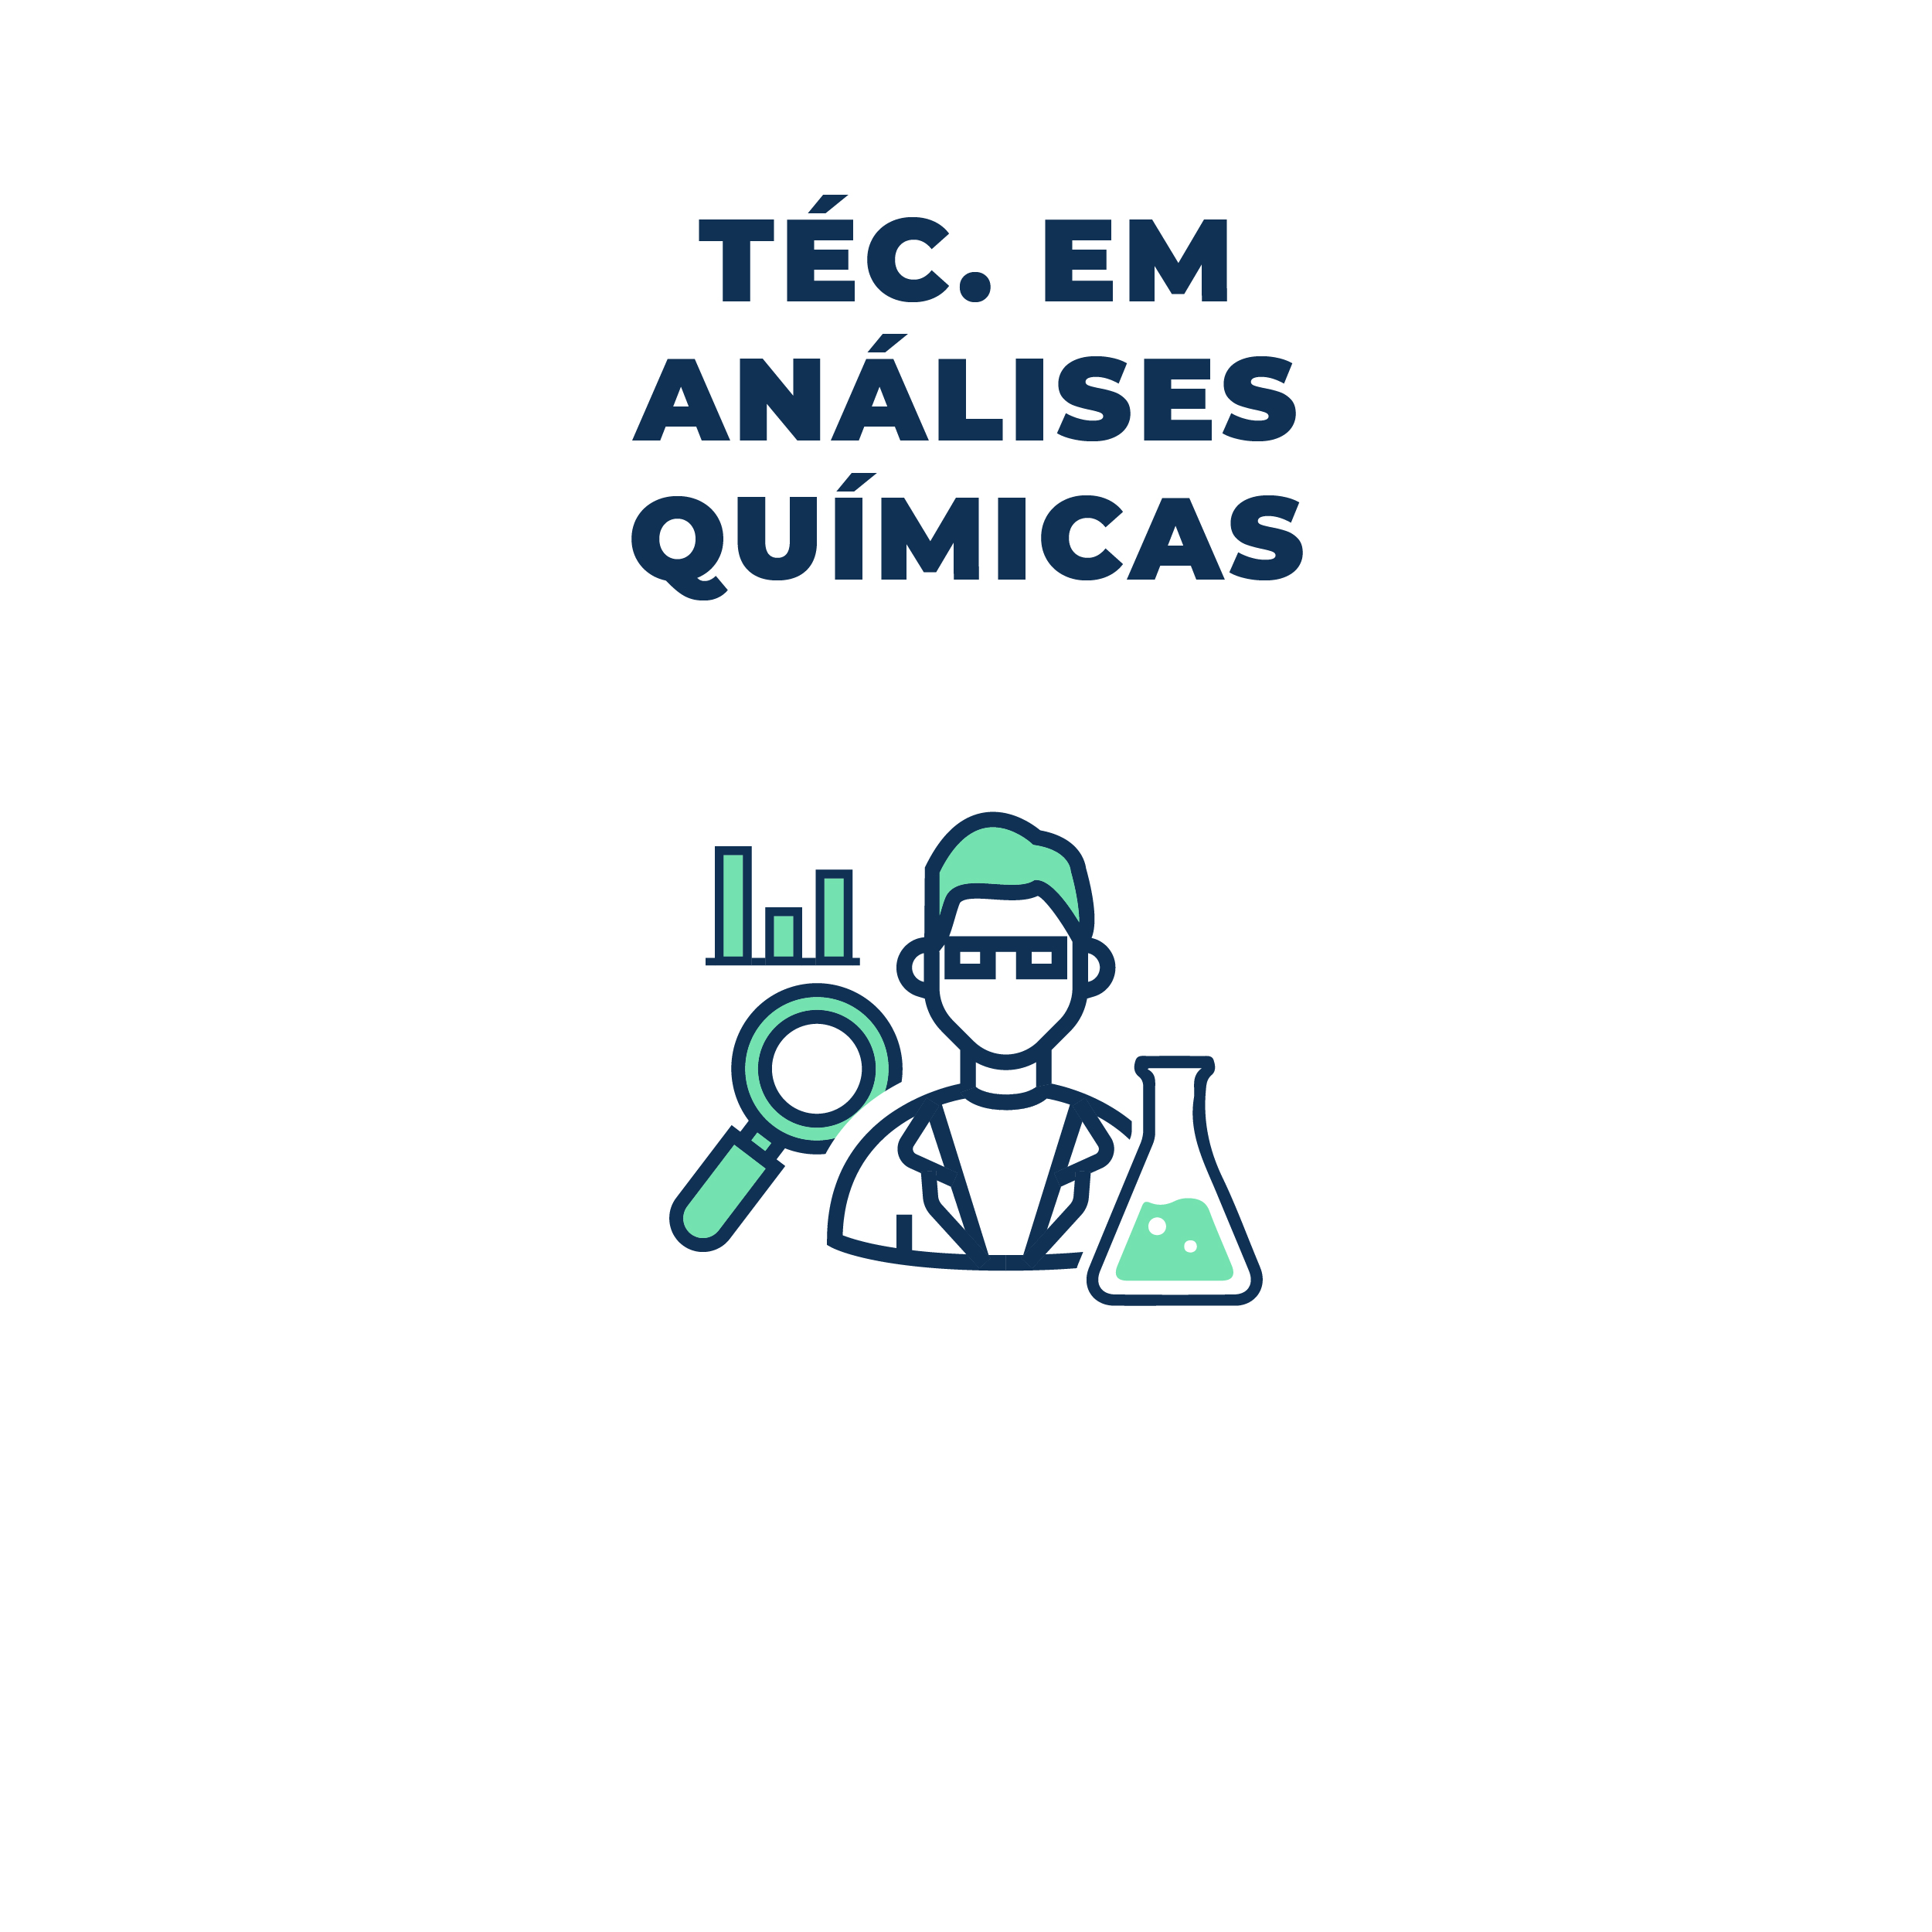 analise quimica